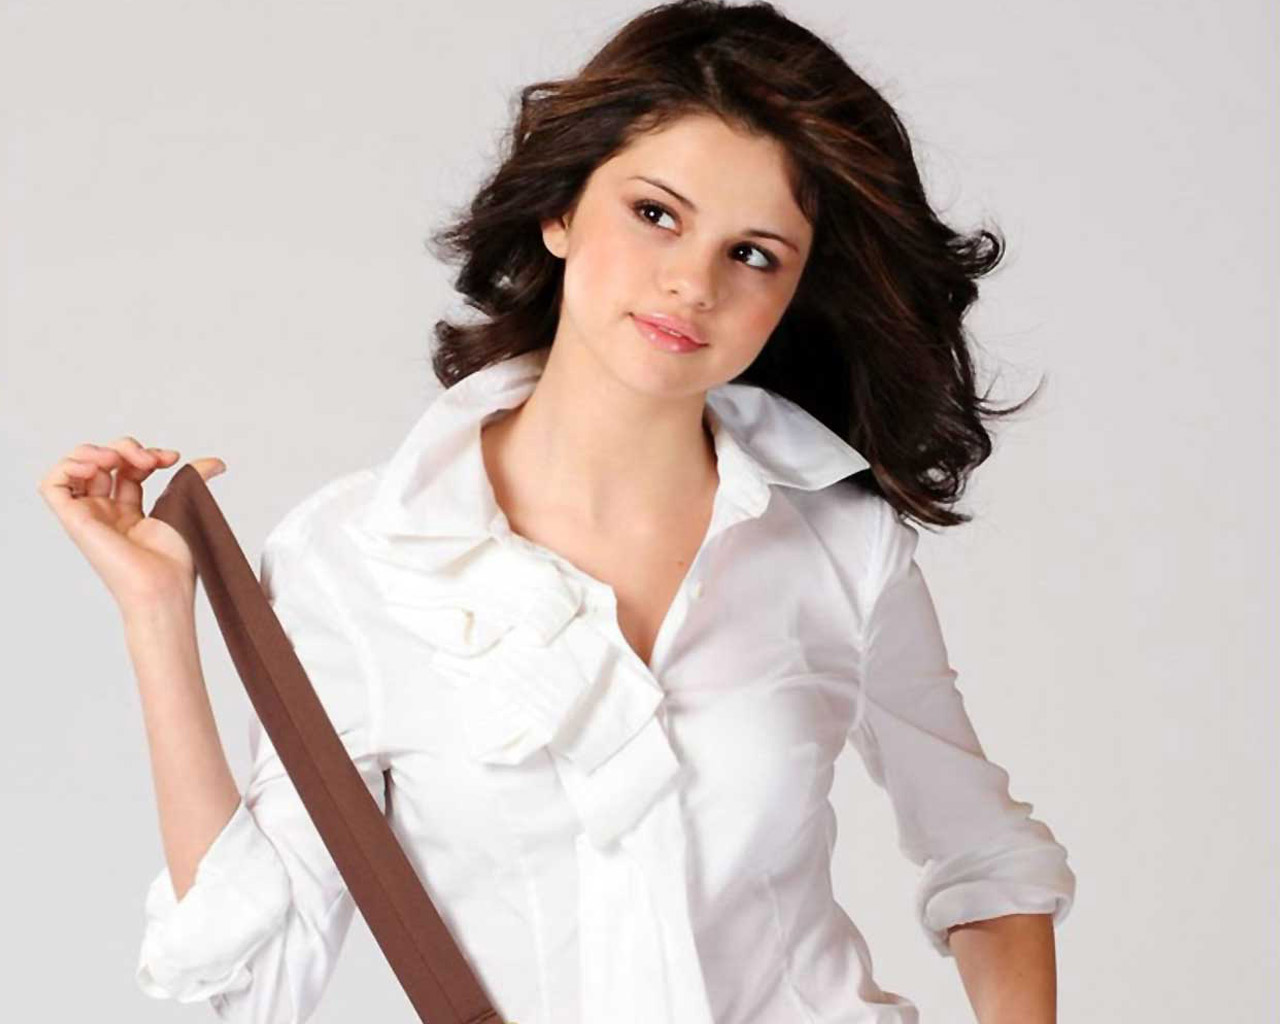 https://1.bp.blogspot.com/-Yk6DQugDLpg/TlPxwhpG0JI/AAAAAAAAAKc/6tnQXa3gf7Y/s1600/selena-gomez-free-wallpapers-download.jpg